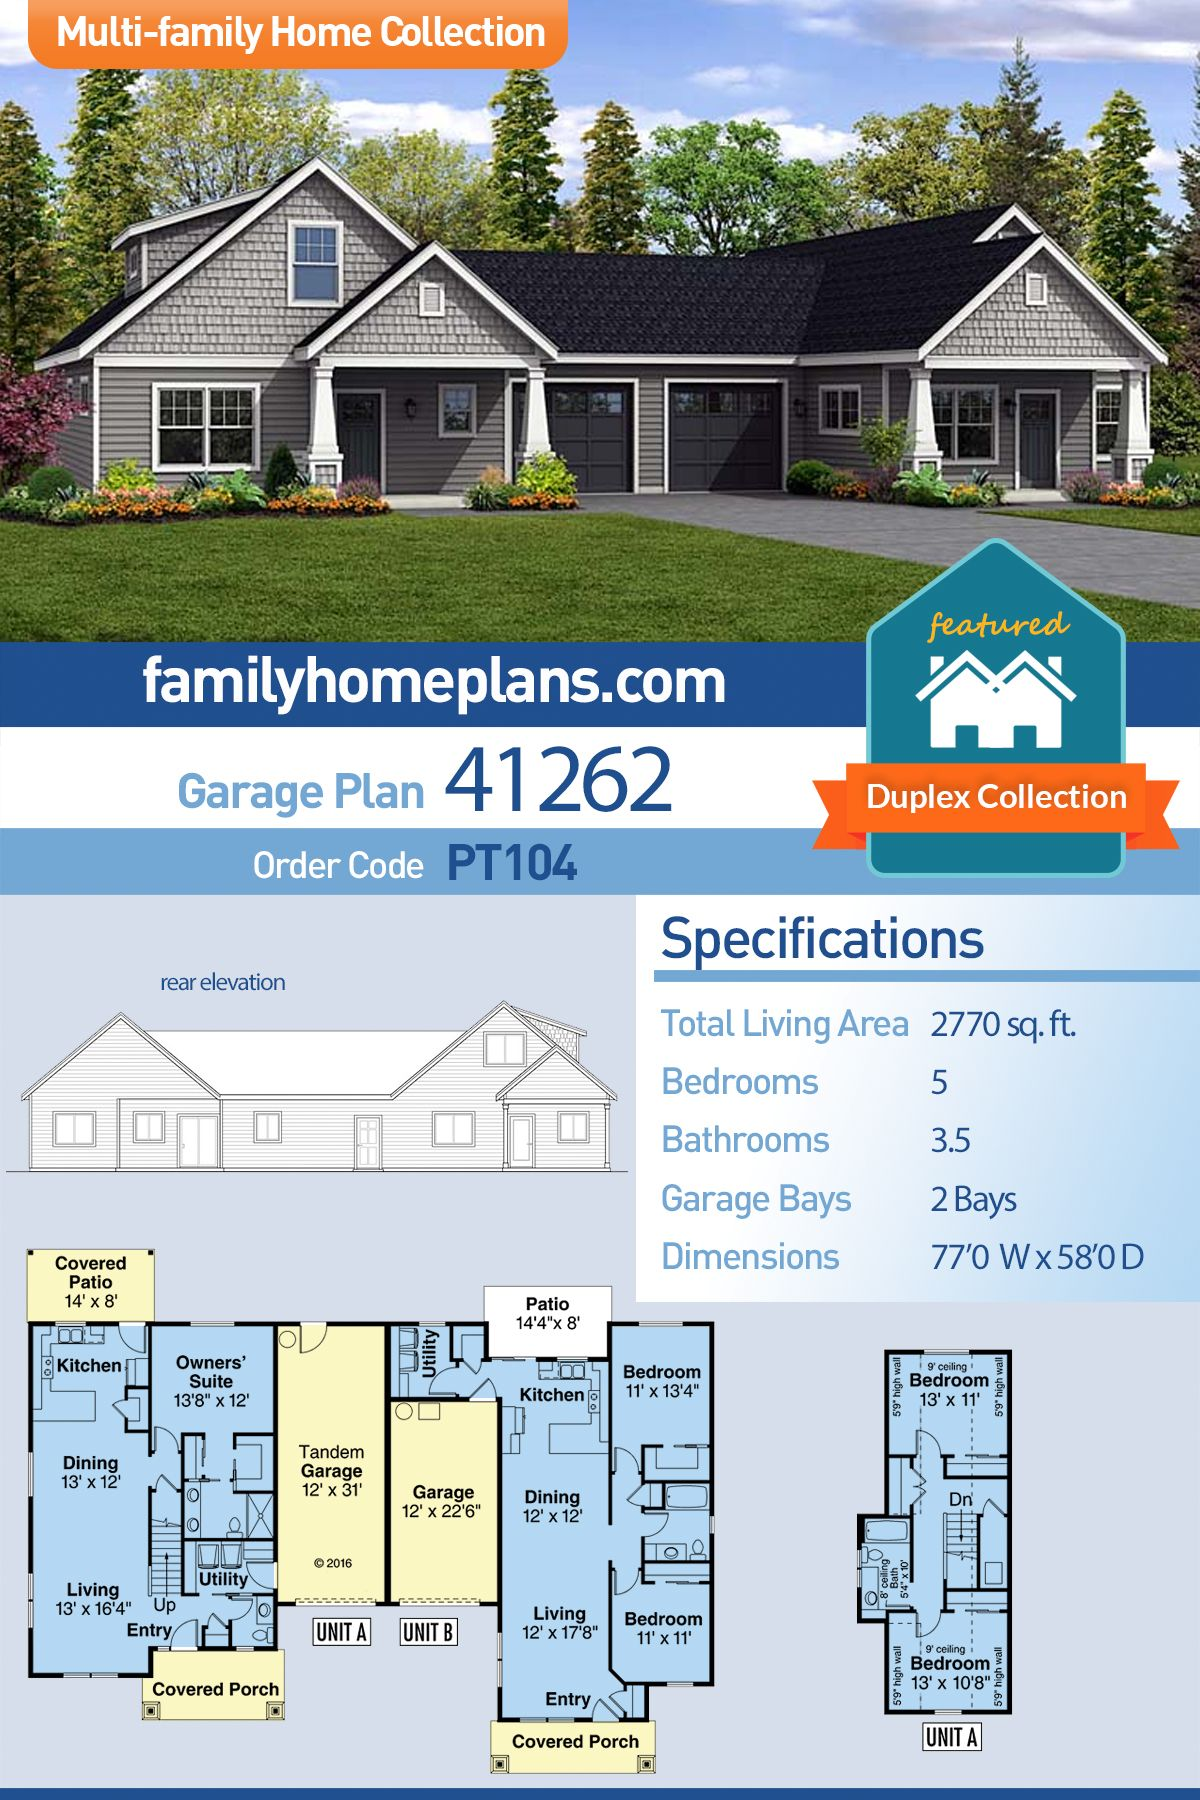 L Shaped House Plans Is One Of The Home Design Images That Can Be An Inspiration To Decorate Your L Shaped House Plans L Shaped House Modern House Floor Plans